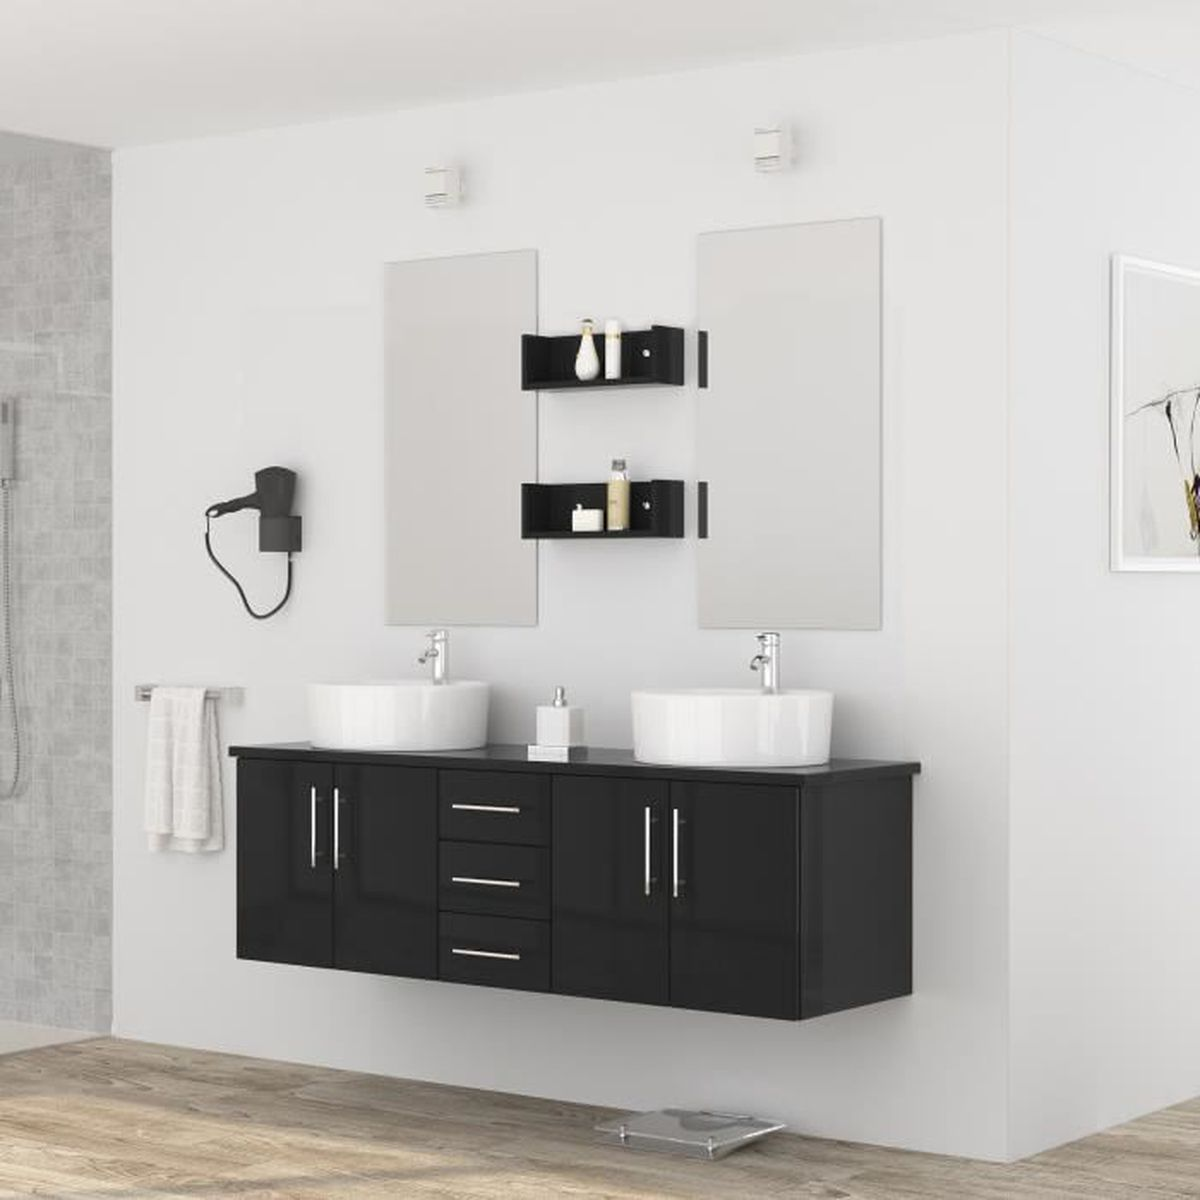 diva salle de bain compl te double vasque 150 cm laqu. Black Bedroom Furniture Sets. Home Design Ideas